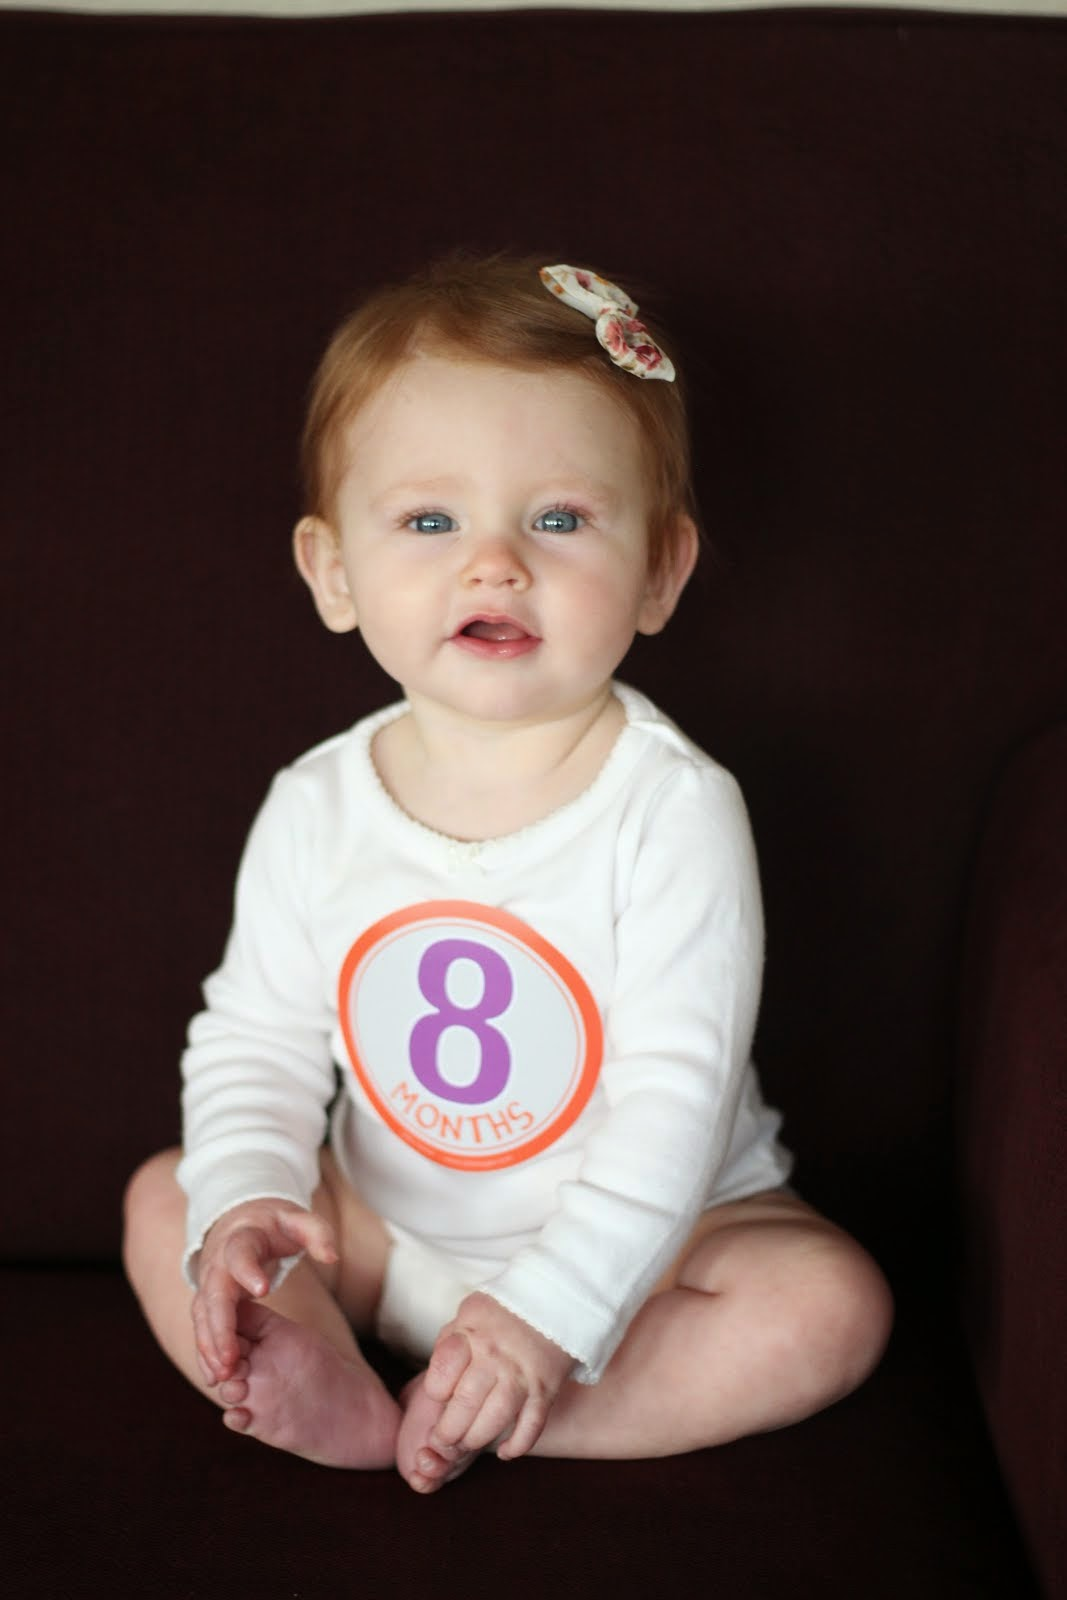 Nora at 8 Months